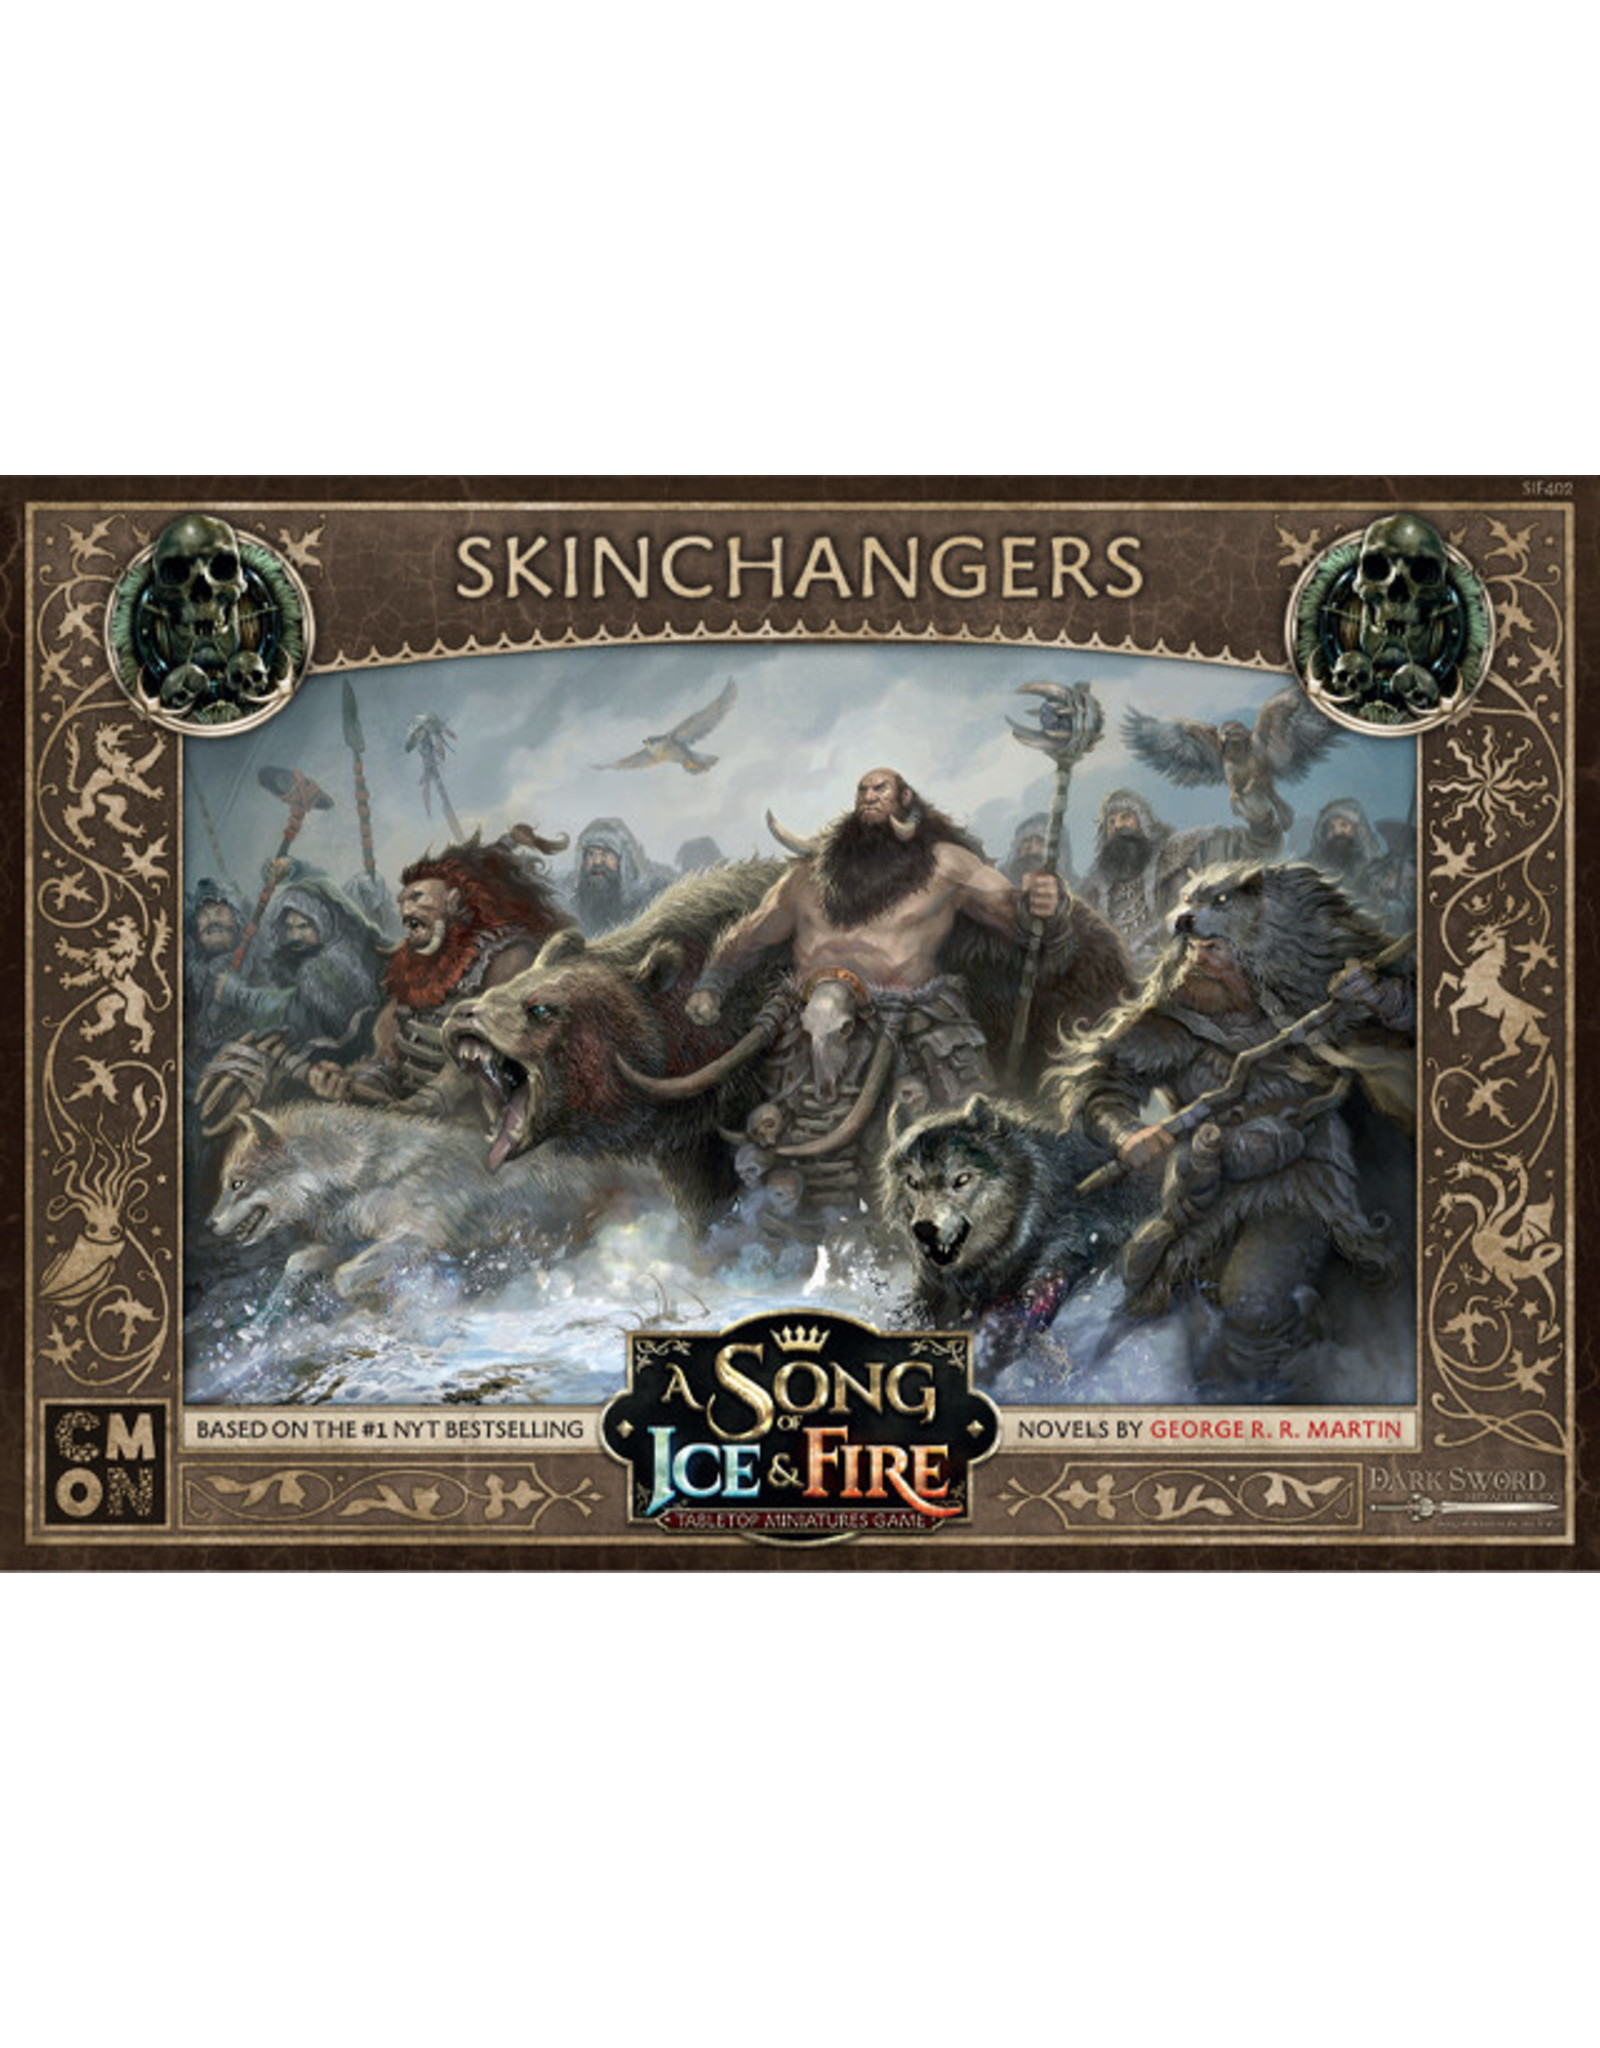 Cool Mini or Not Free Folk Skinchangers : A Song of Ice & Fire Tabletop Miniatures Game